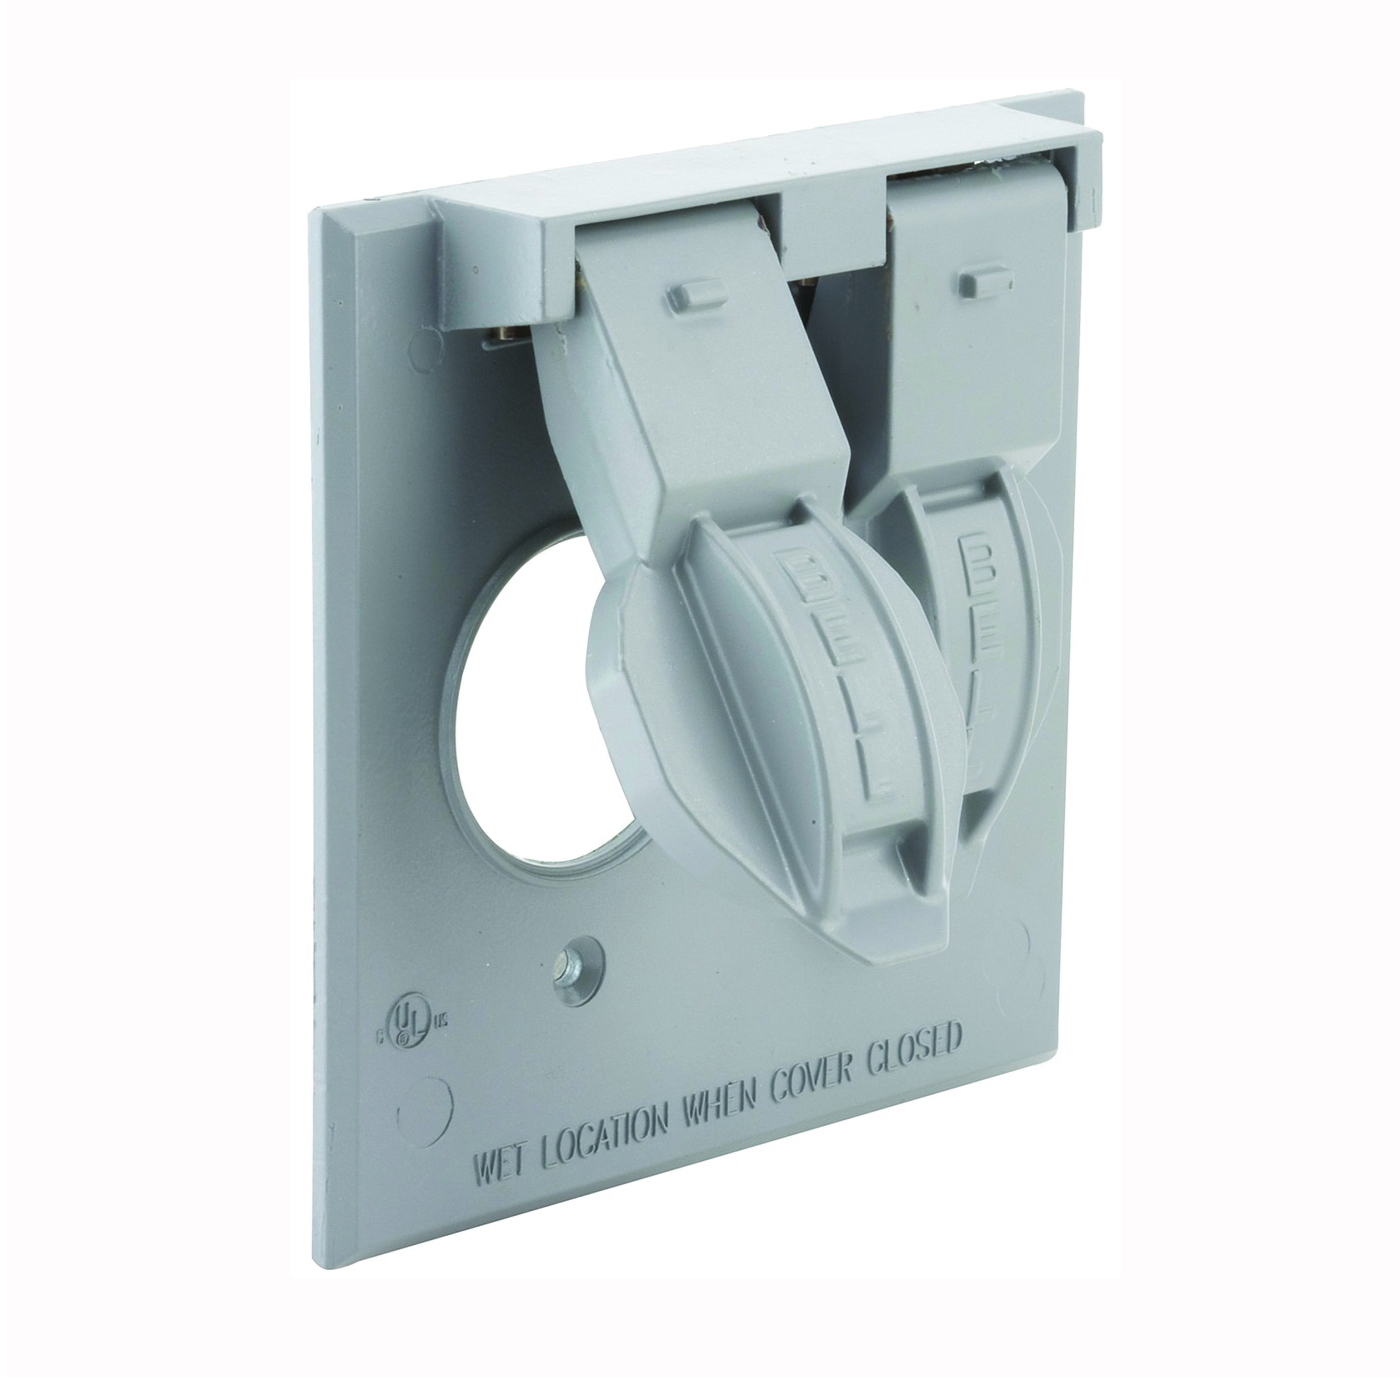 Picture of HUBBELL 5157-0 Cover, 1-13/32 in Dia, 4-17/32 in L, 4-17/32 in W, Metal, Gray, Powder-Coated